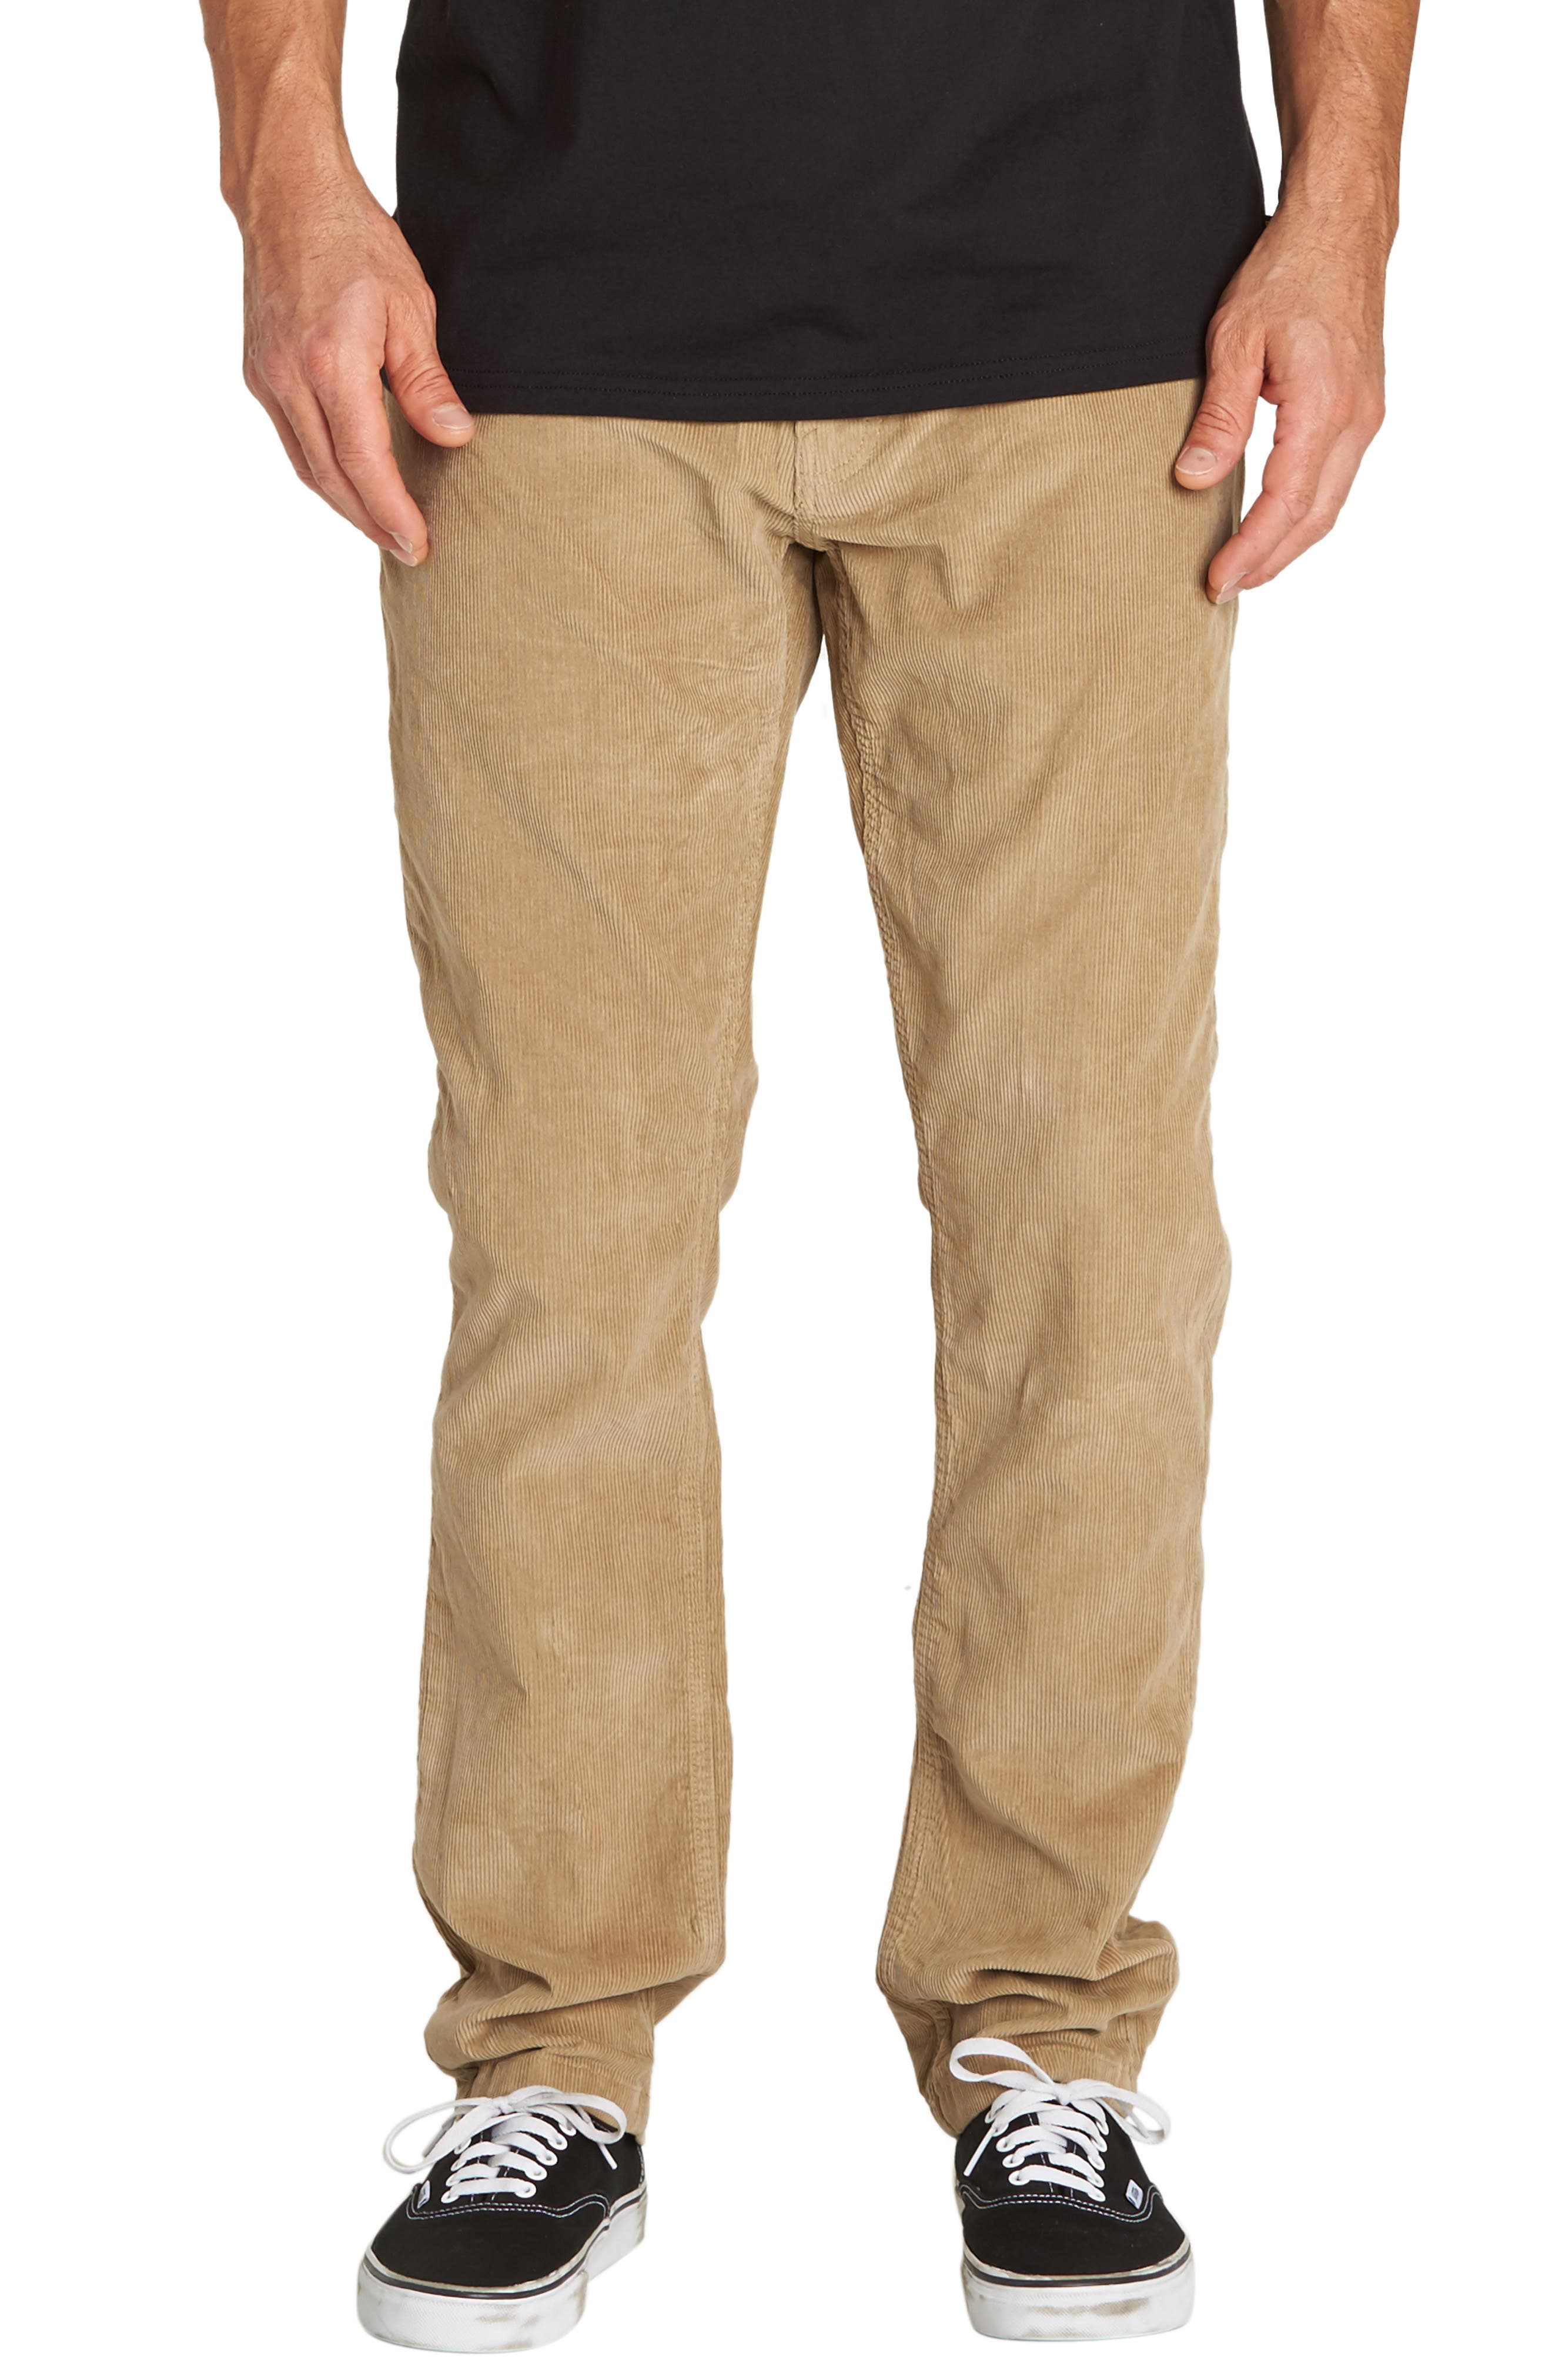 Outsider Slim Straight Leg Corduroy Pants,                             Main thumbnail 1, color,                             GRAVEL